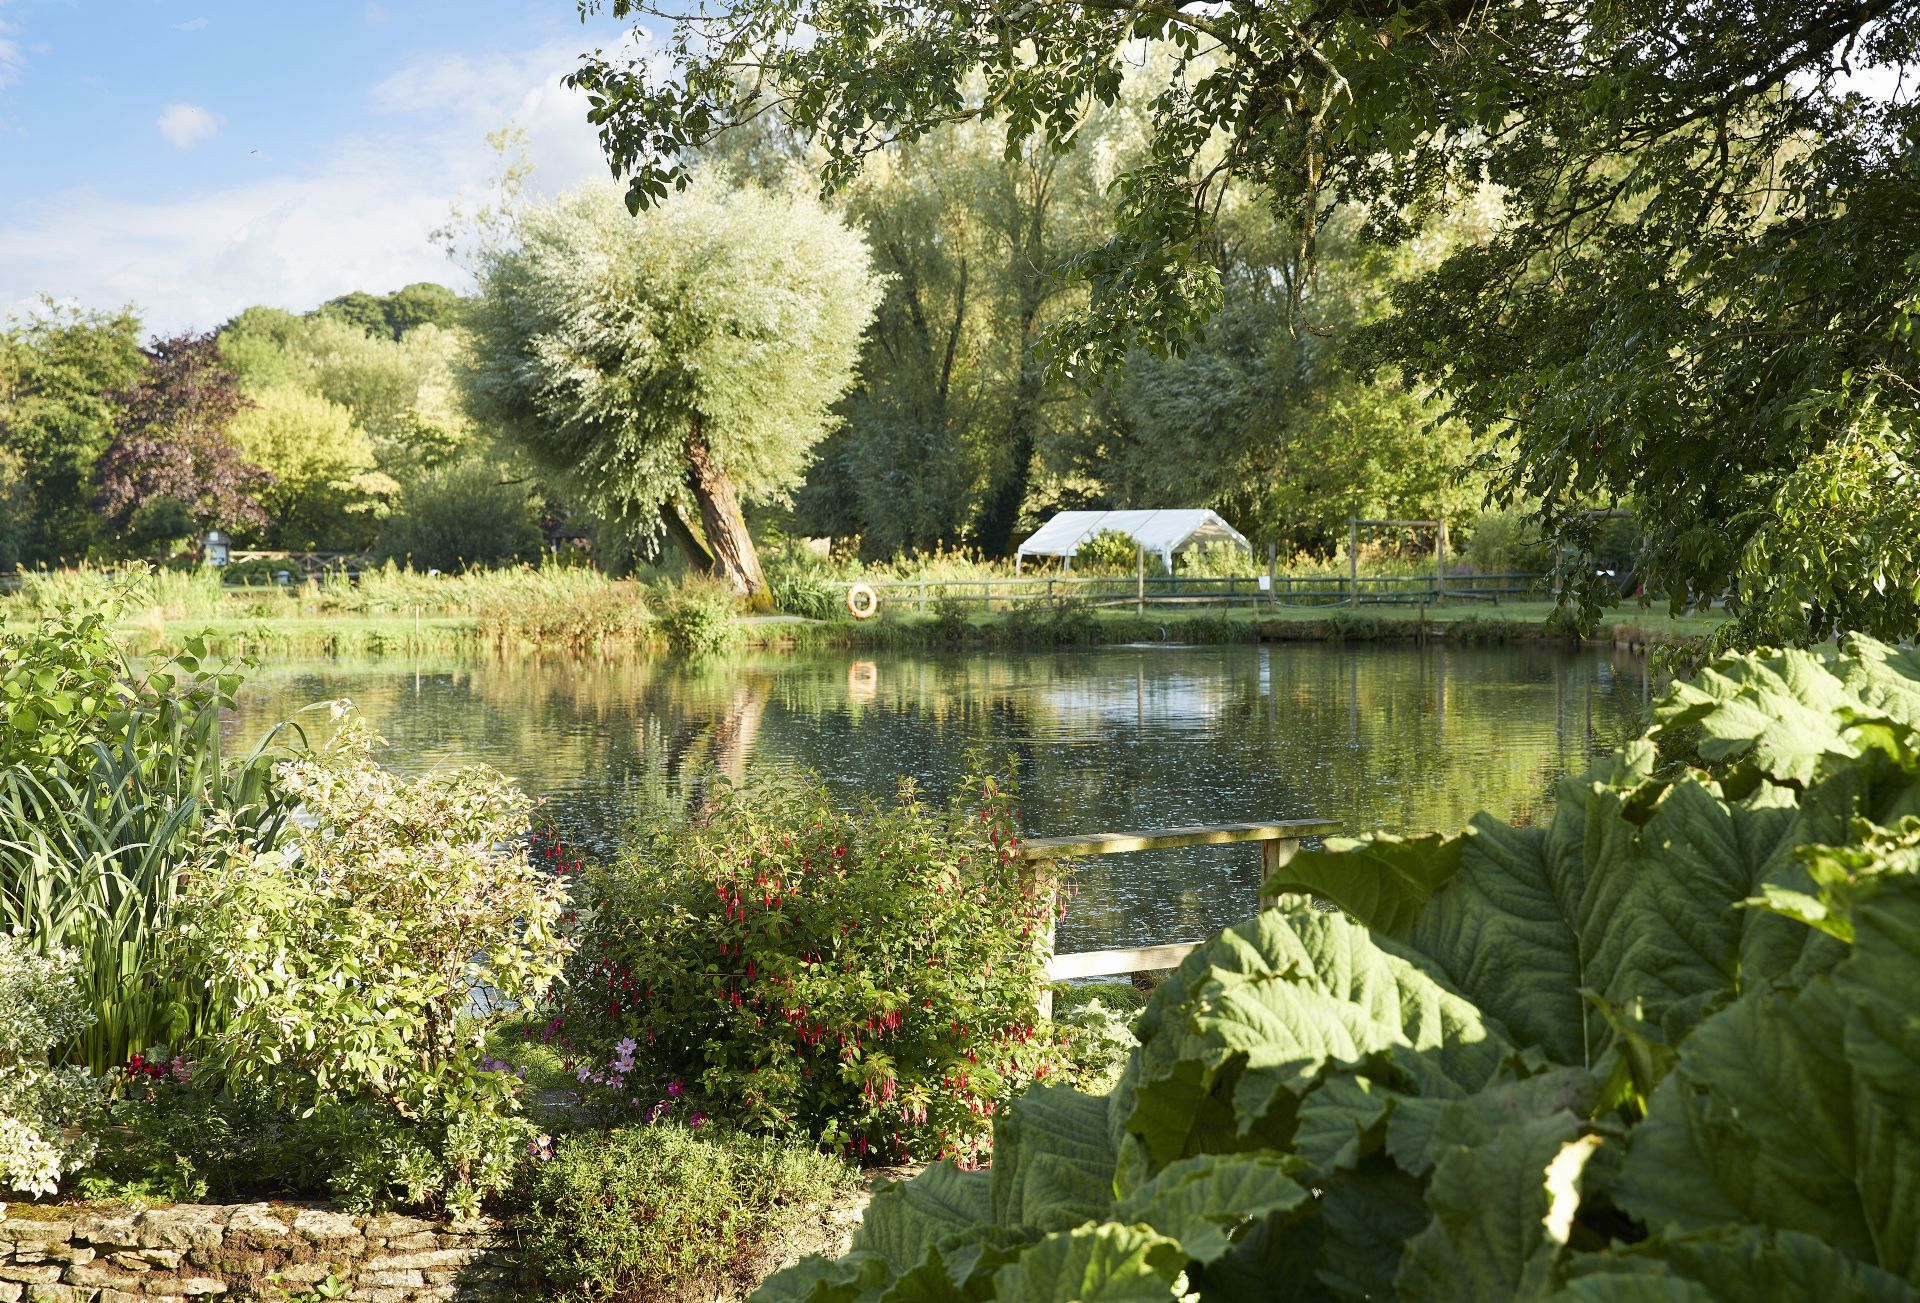 The area surrounding Rosebank Barn has wonderful river walks and country footpaths to discover